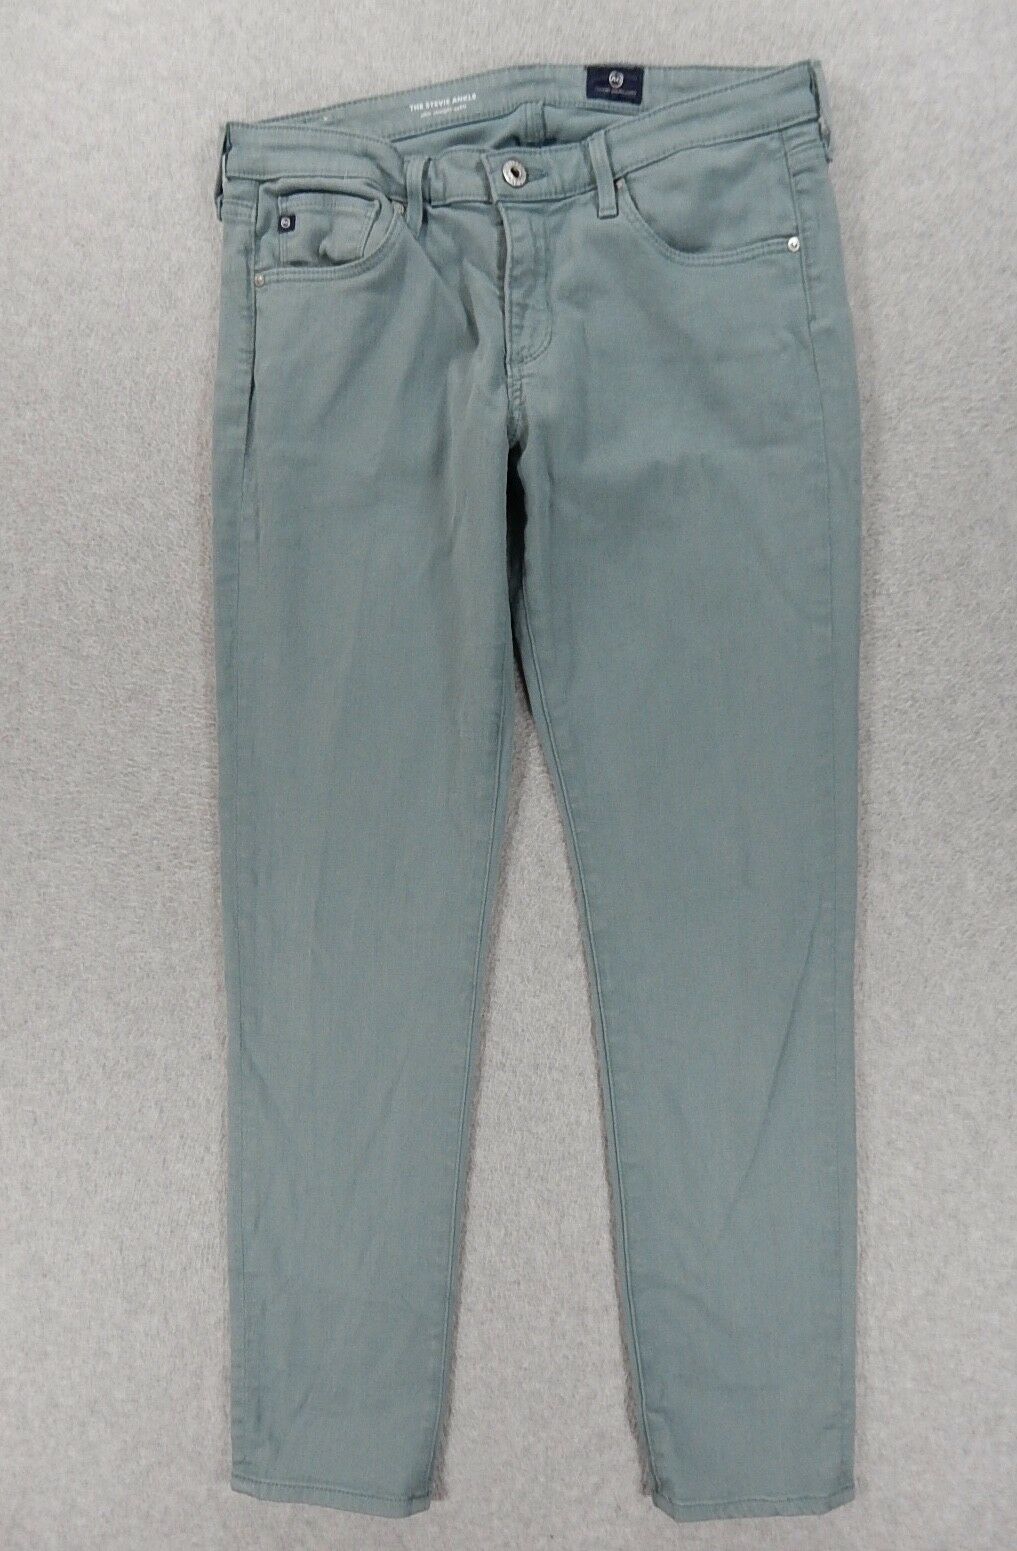 Adriano goldschmied THE STEVIE ANKLE Straight Leg Jeans (Womens 29R)